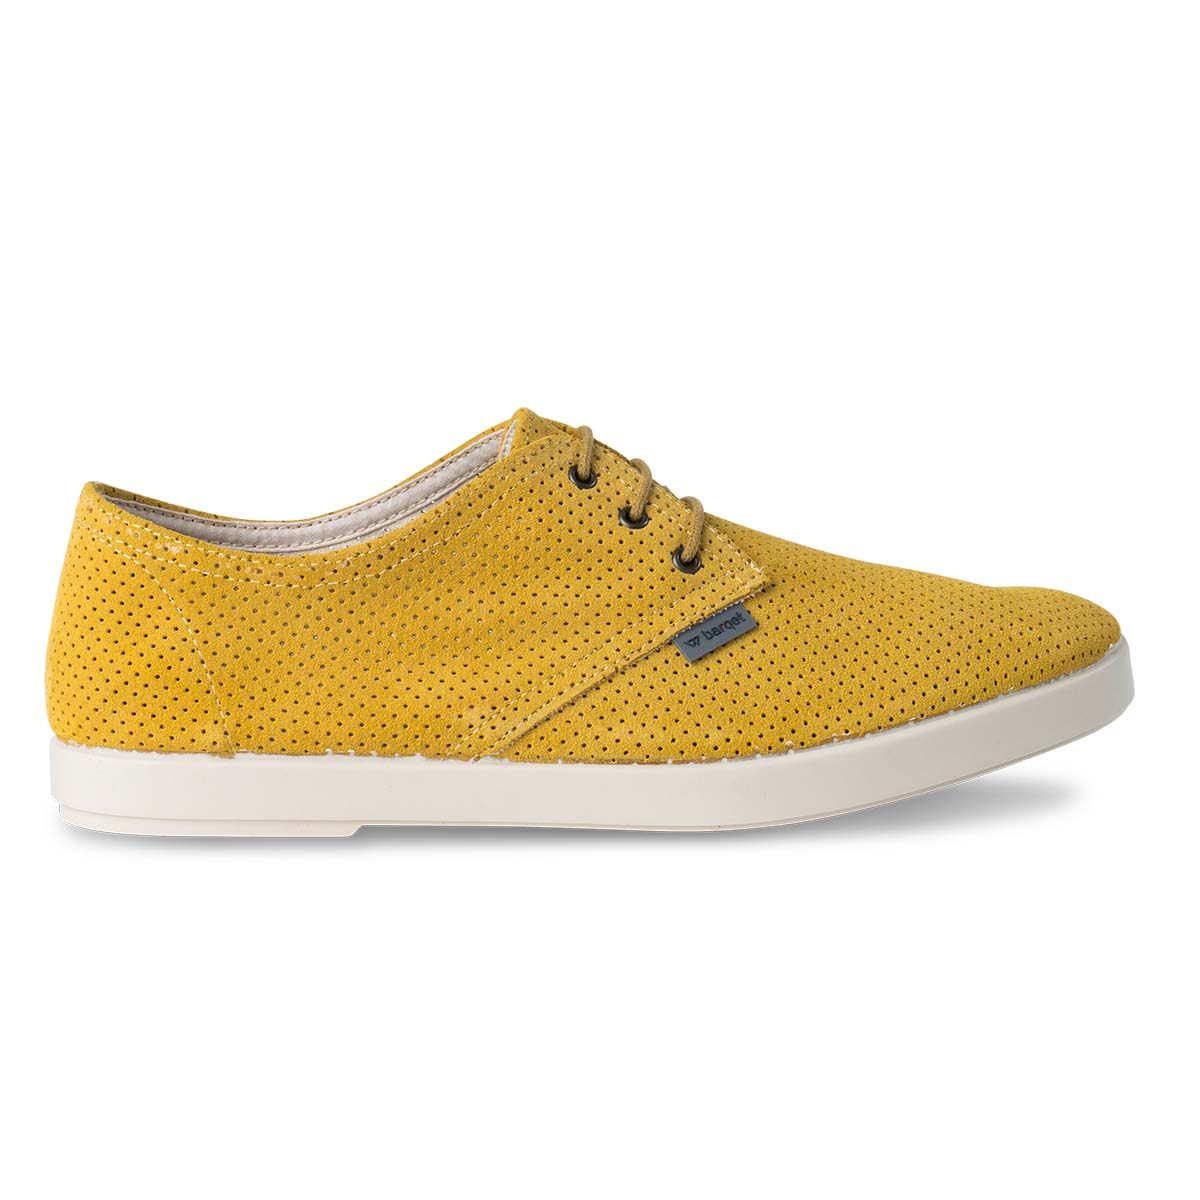 Zapatillas Dogma Low Perforated - Yellow Suede